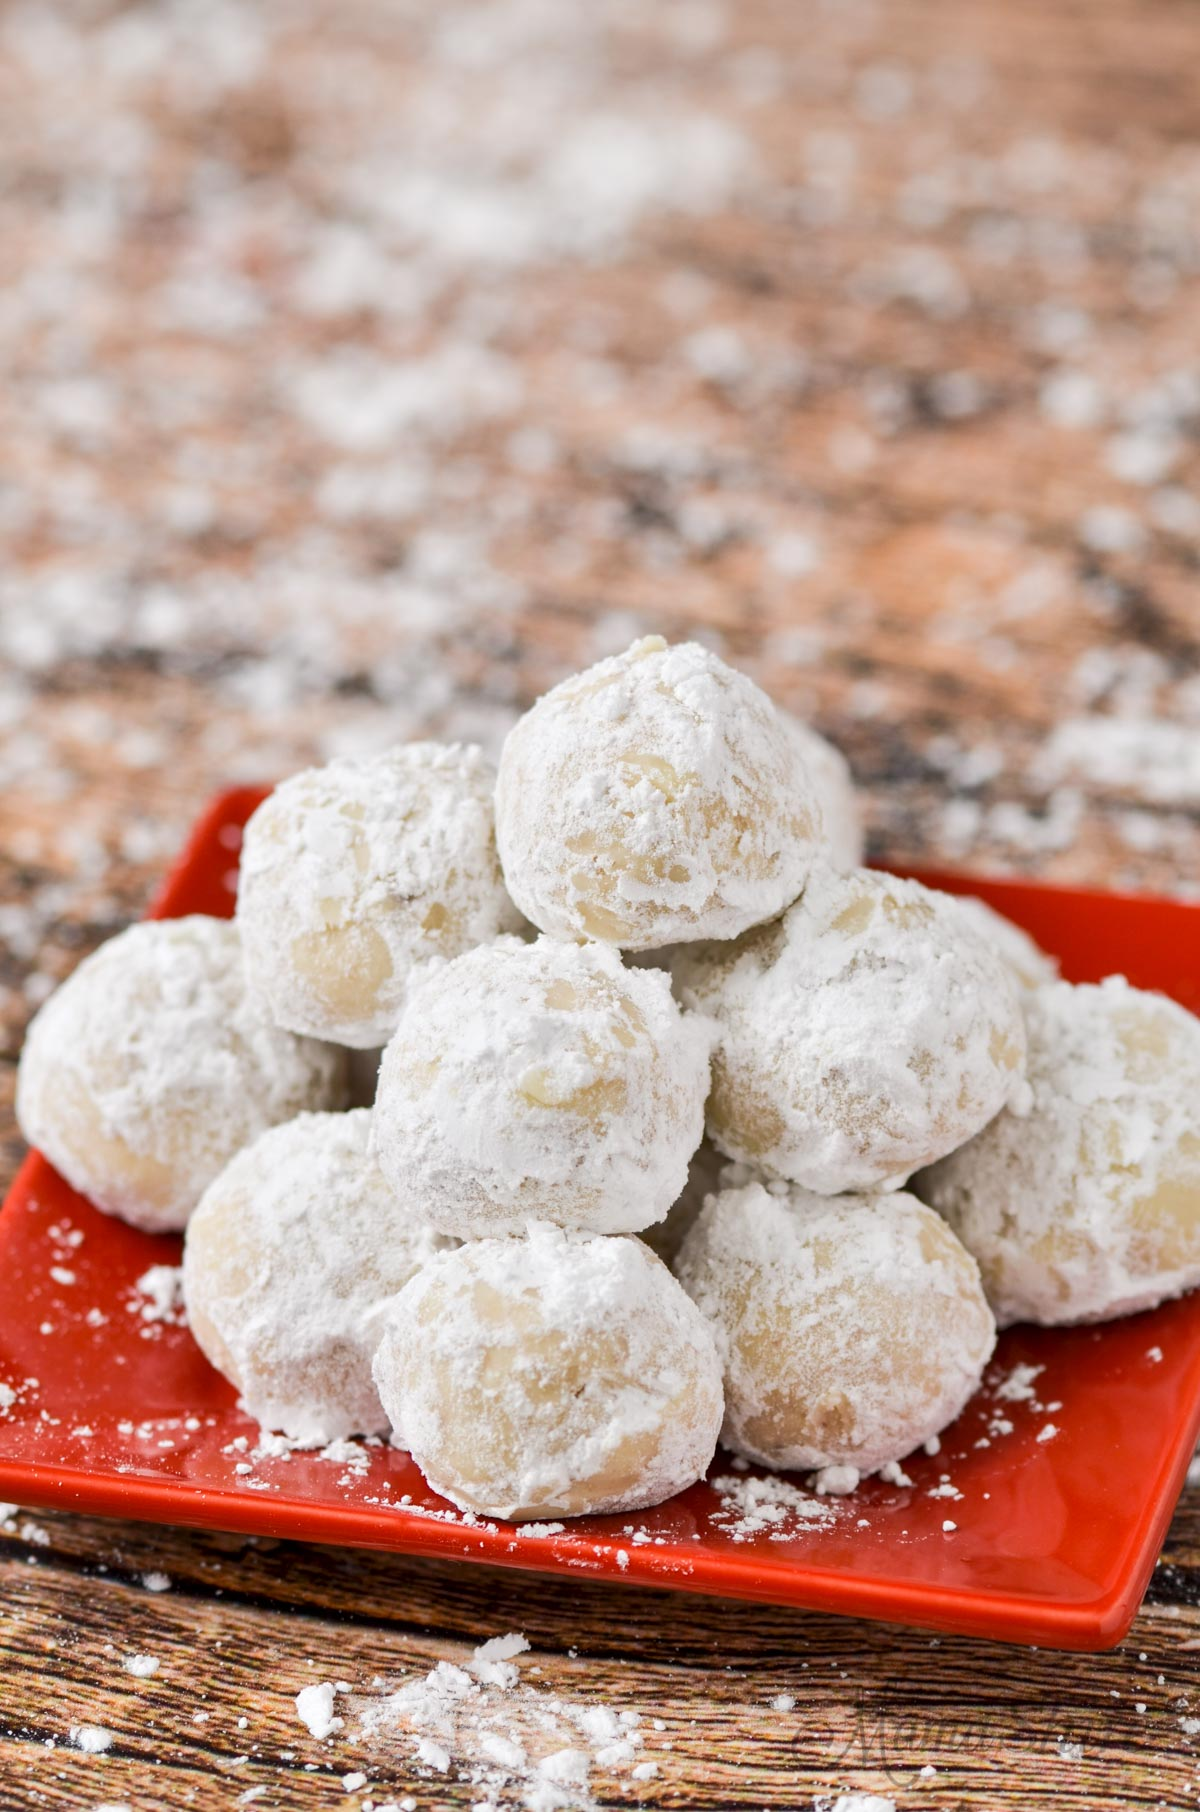 Little powdered sugar covered gluten-free snowball cookies.